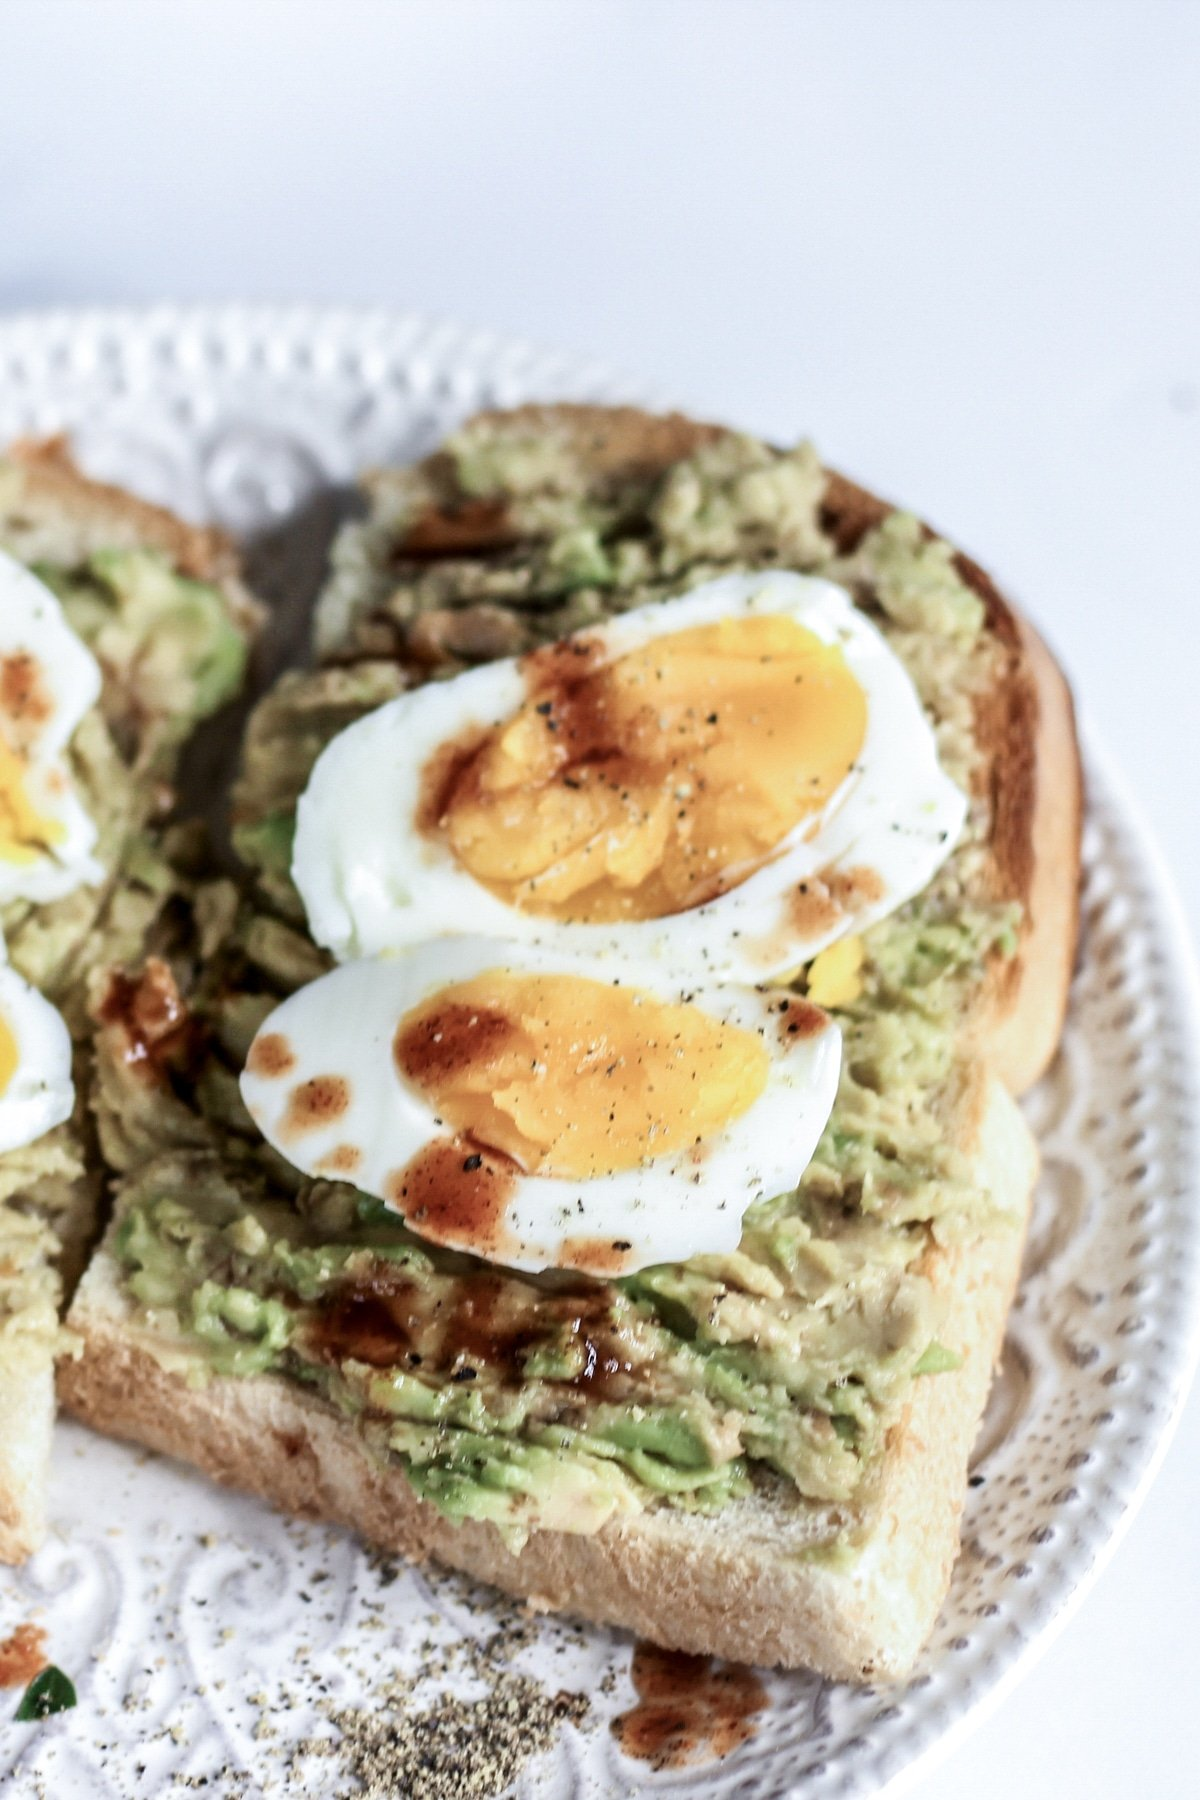 Garlic Avocado Toast With Sous Vide Soft Boiled Egg